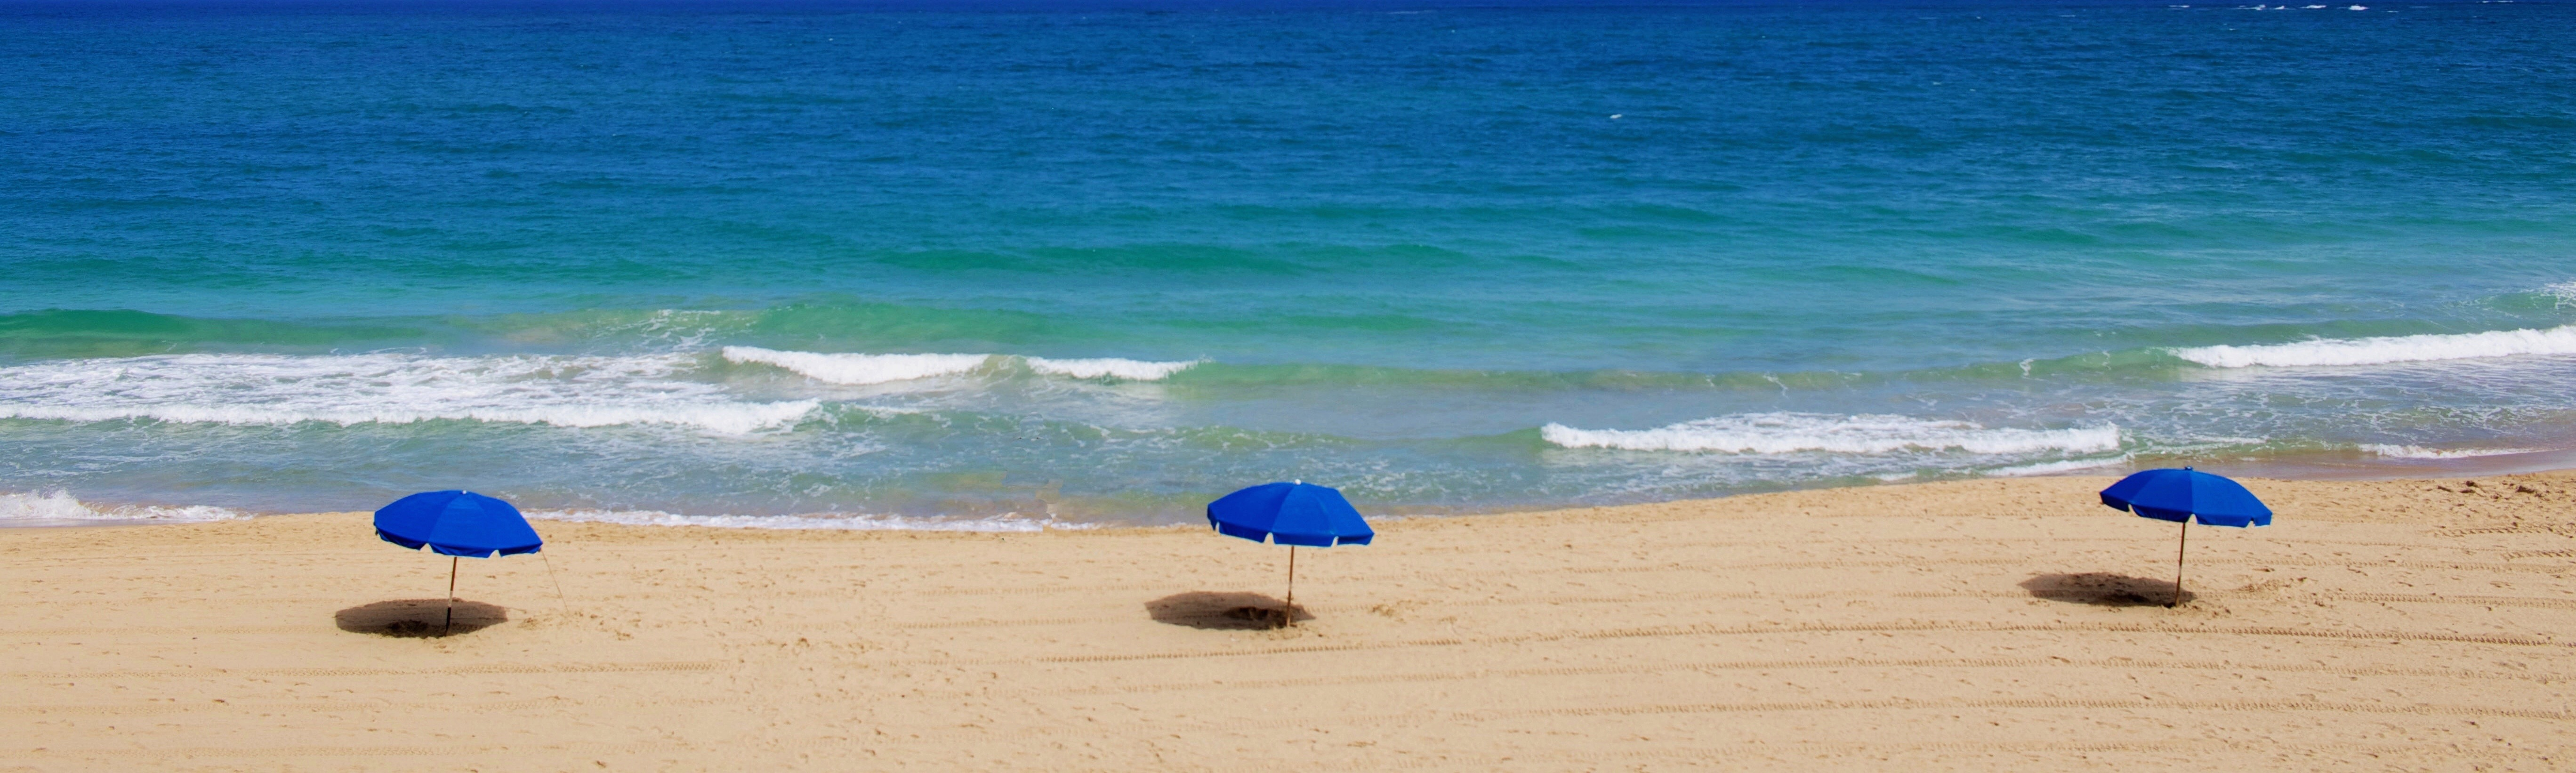 Image of beach with three umbrellas.